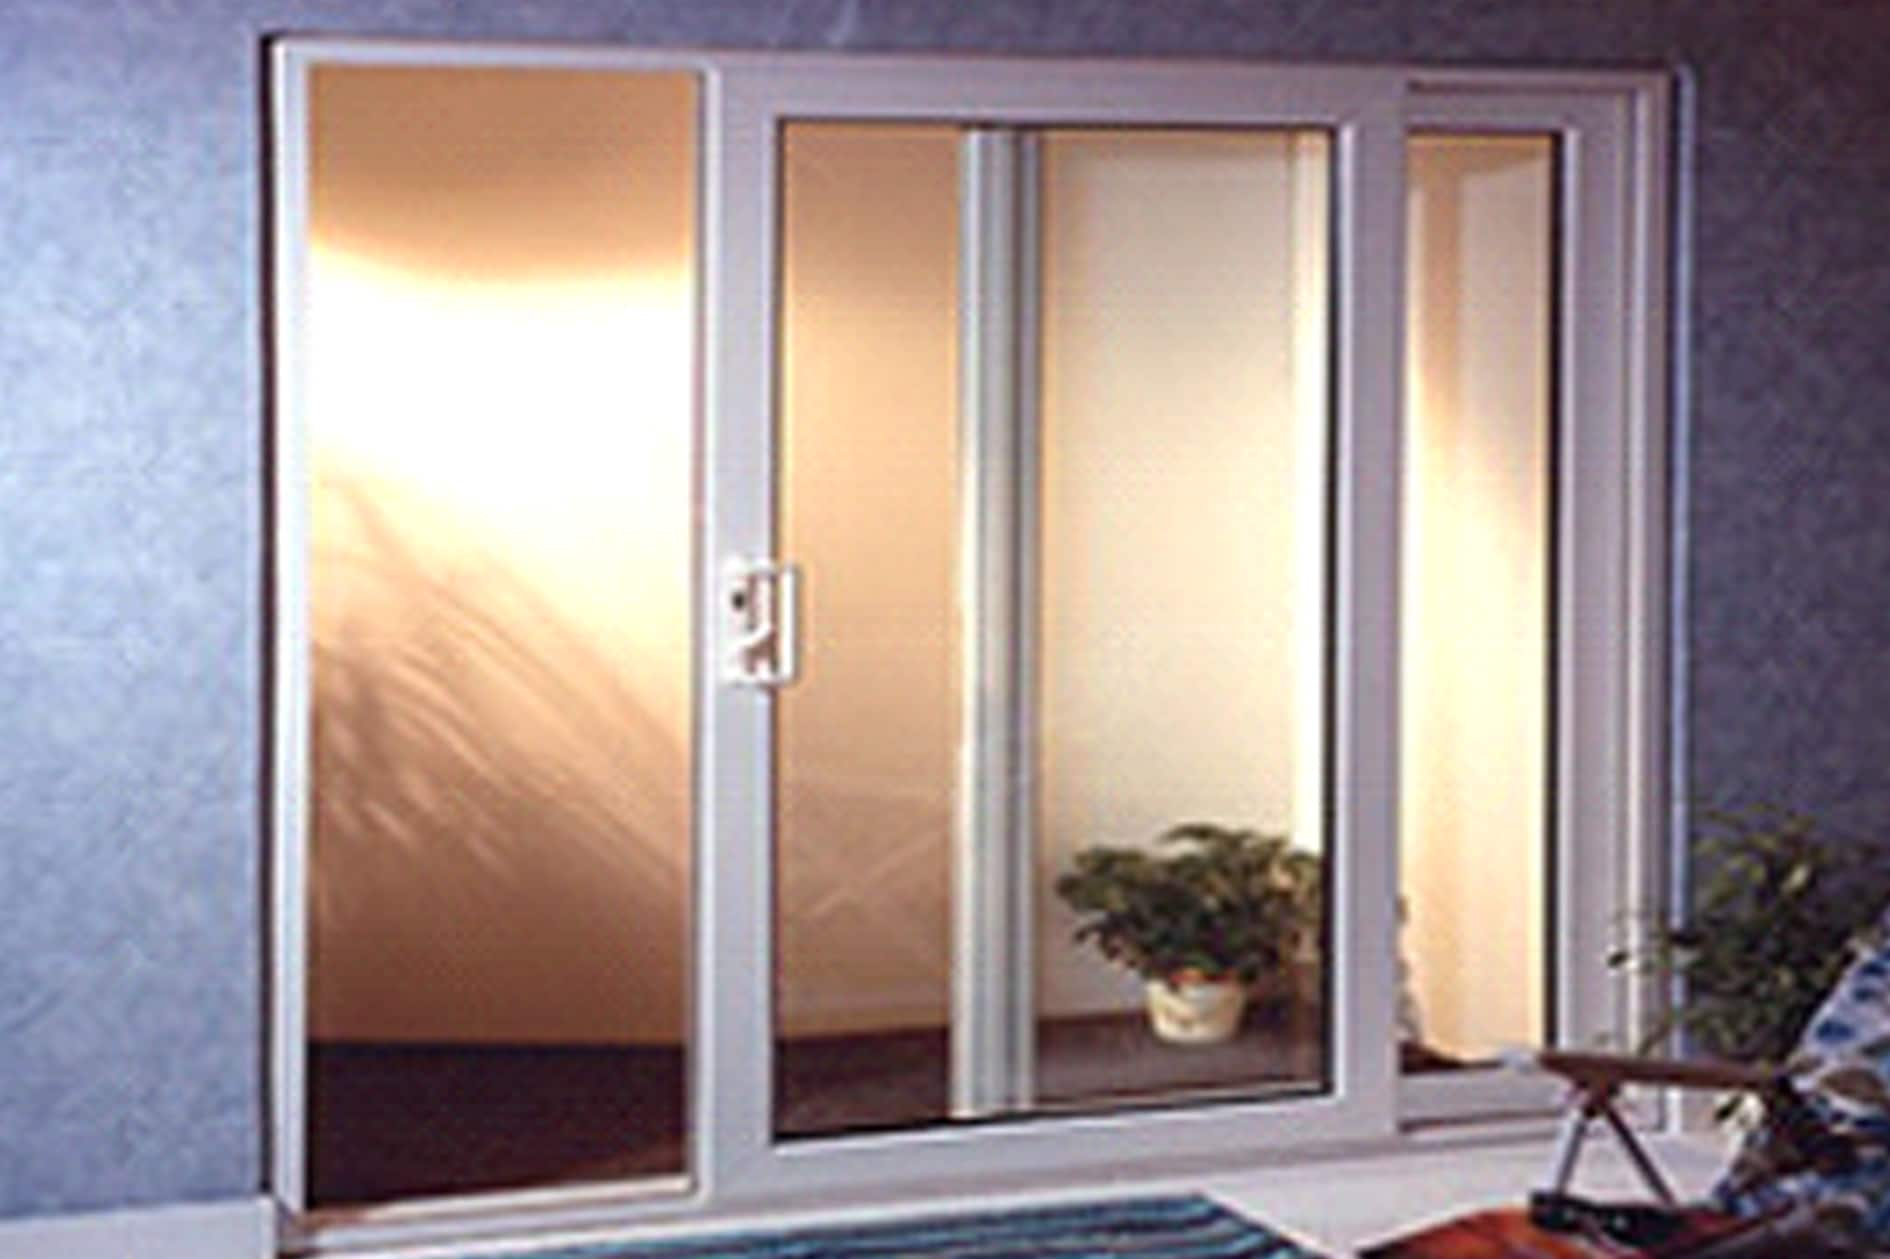 Design Balcony Door balcony door fortunne upvc windows doors door